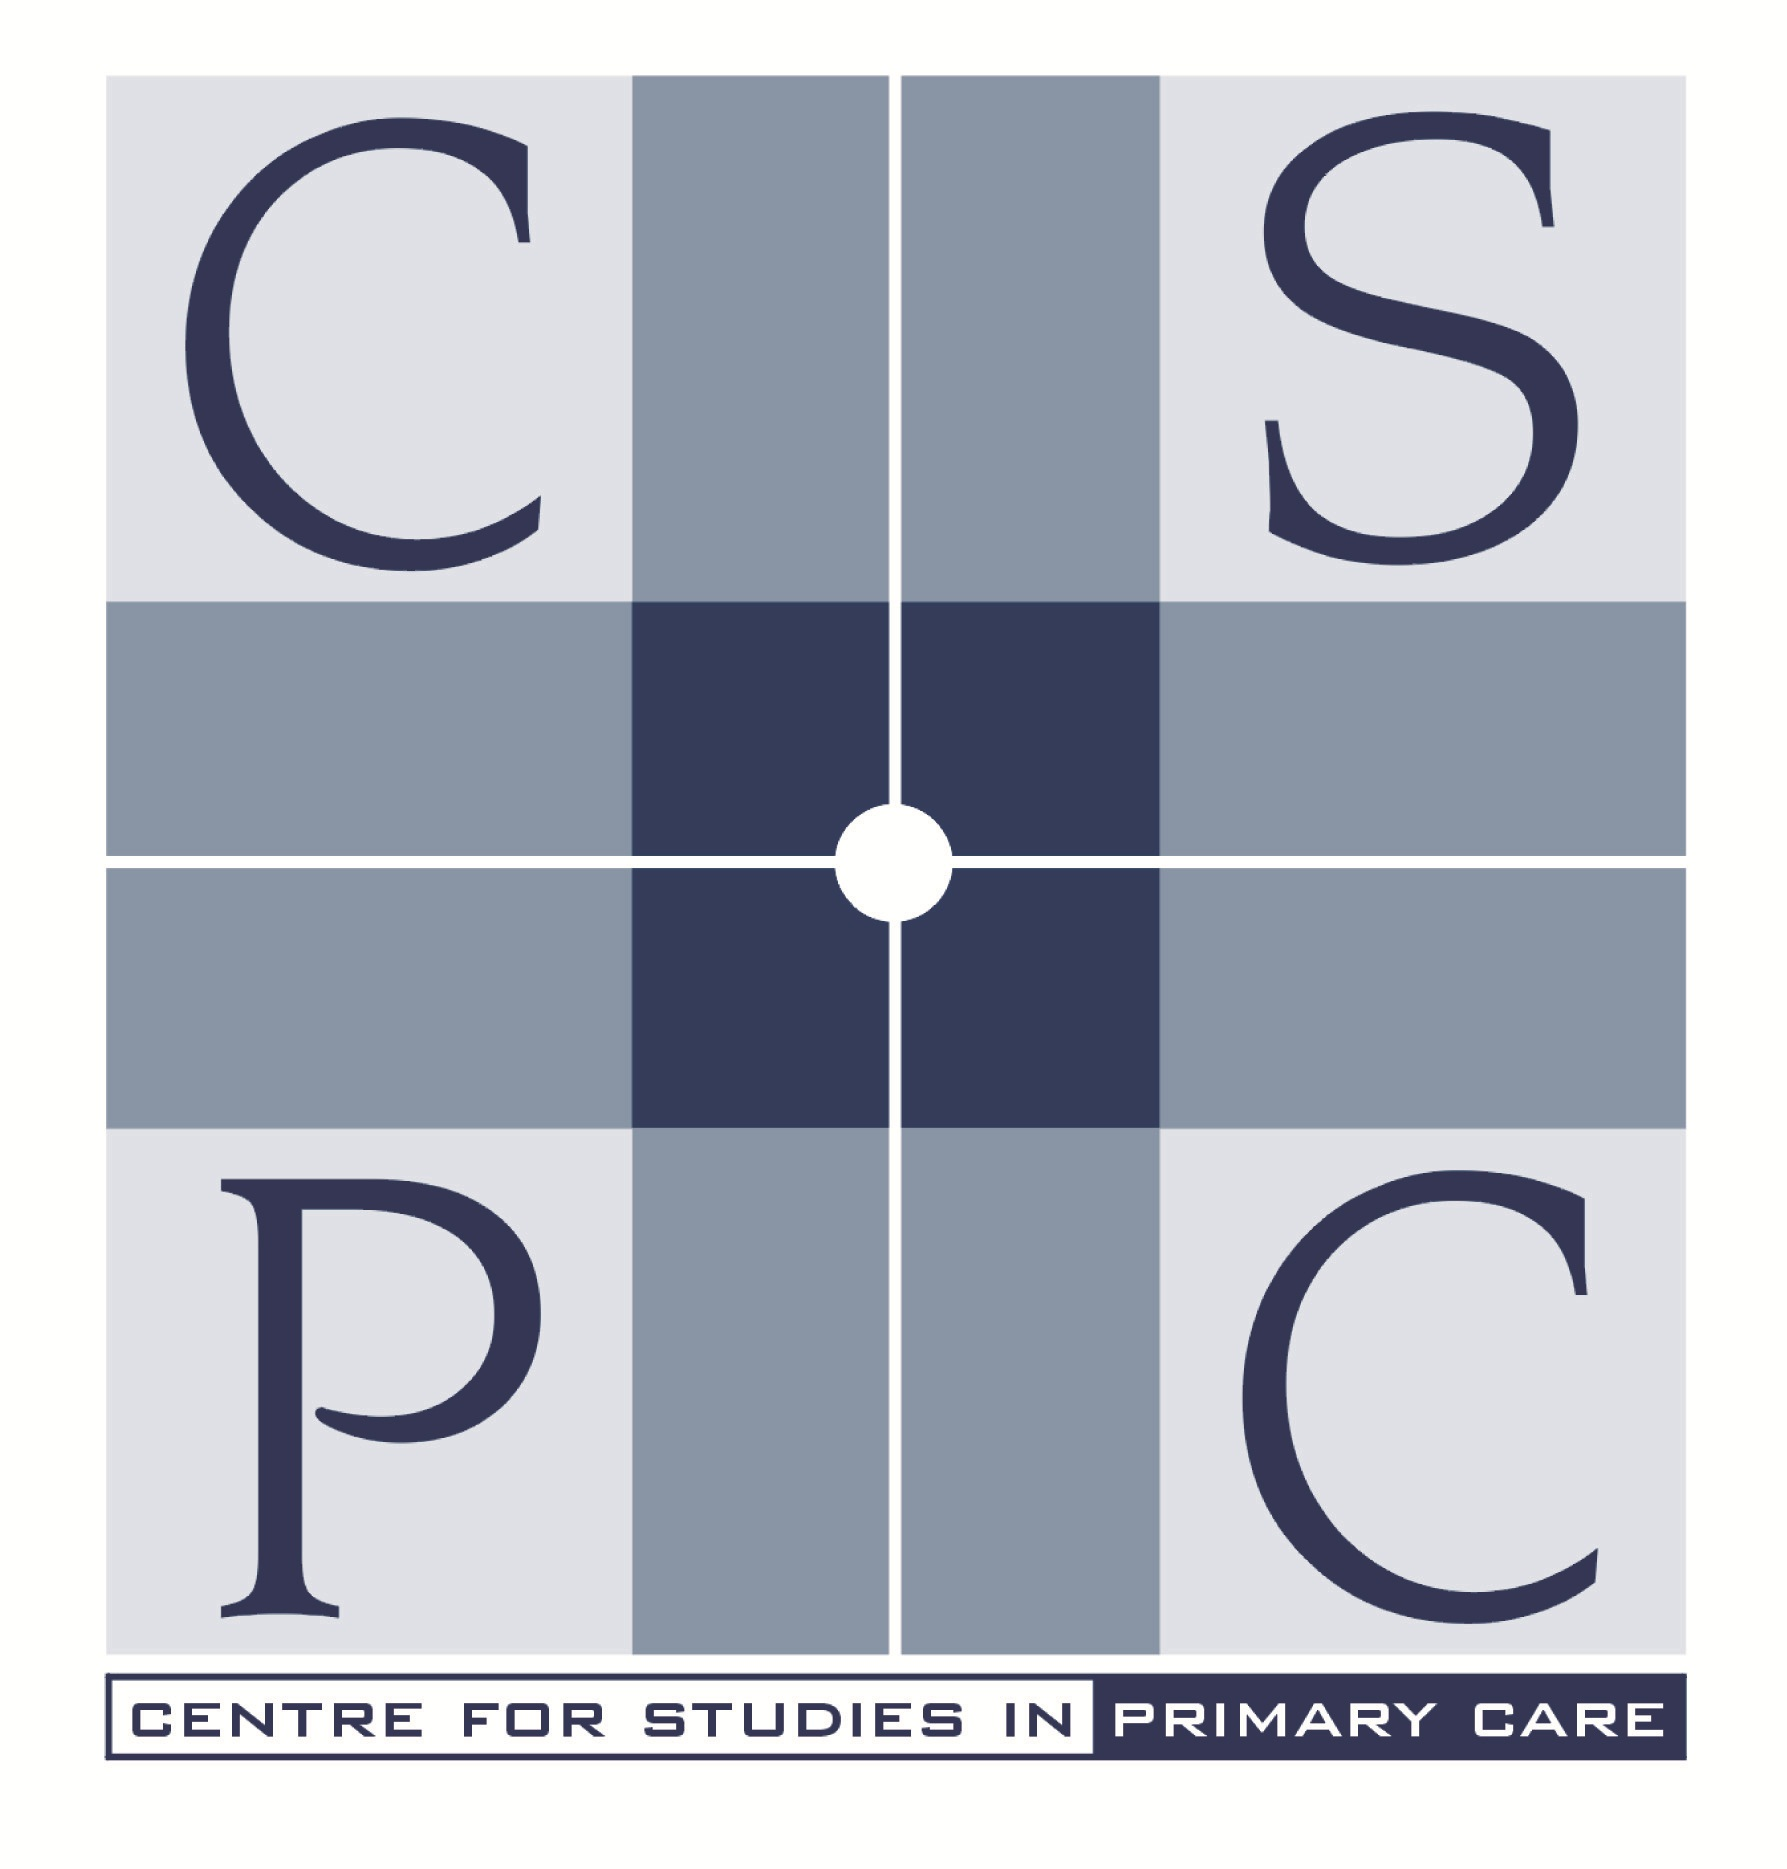 [Centre for Studies in Primary Care - wordmark]